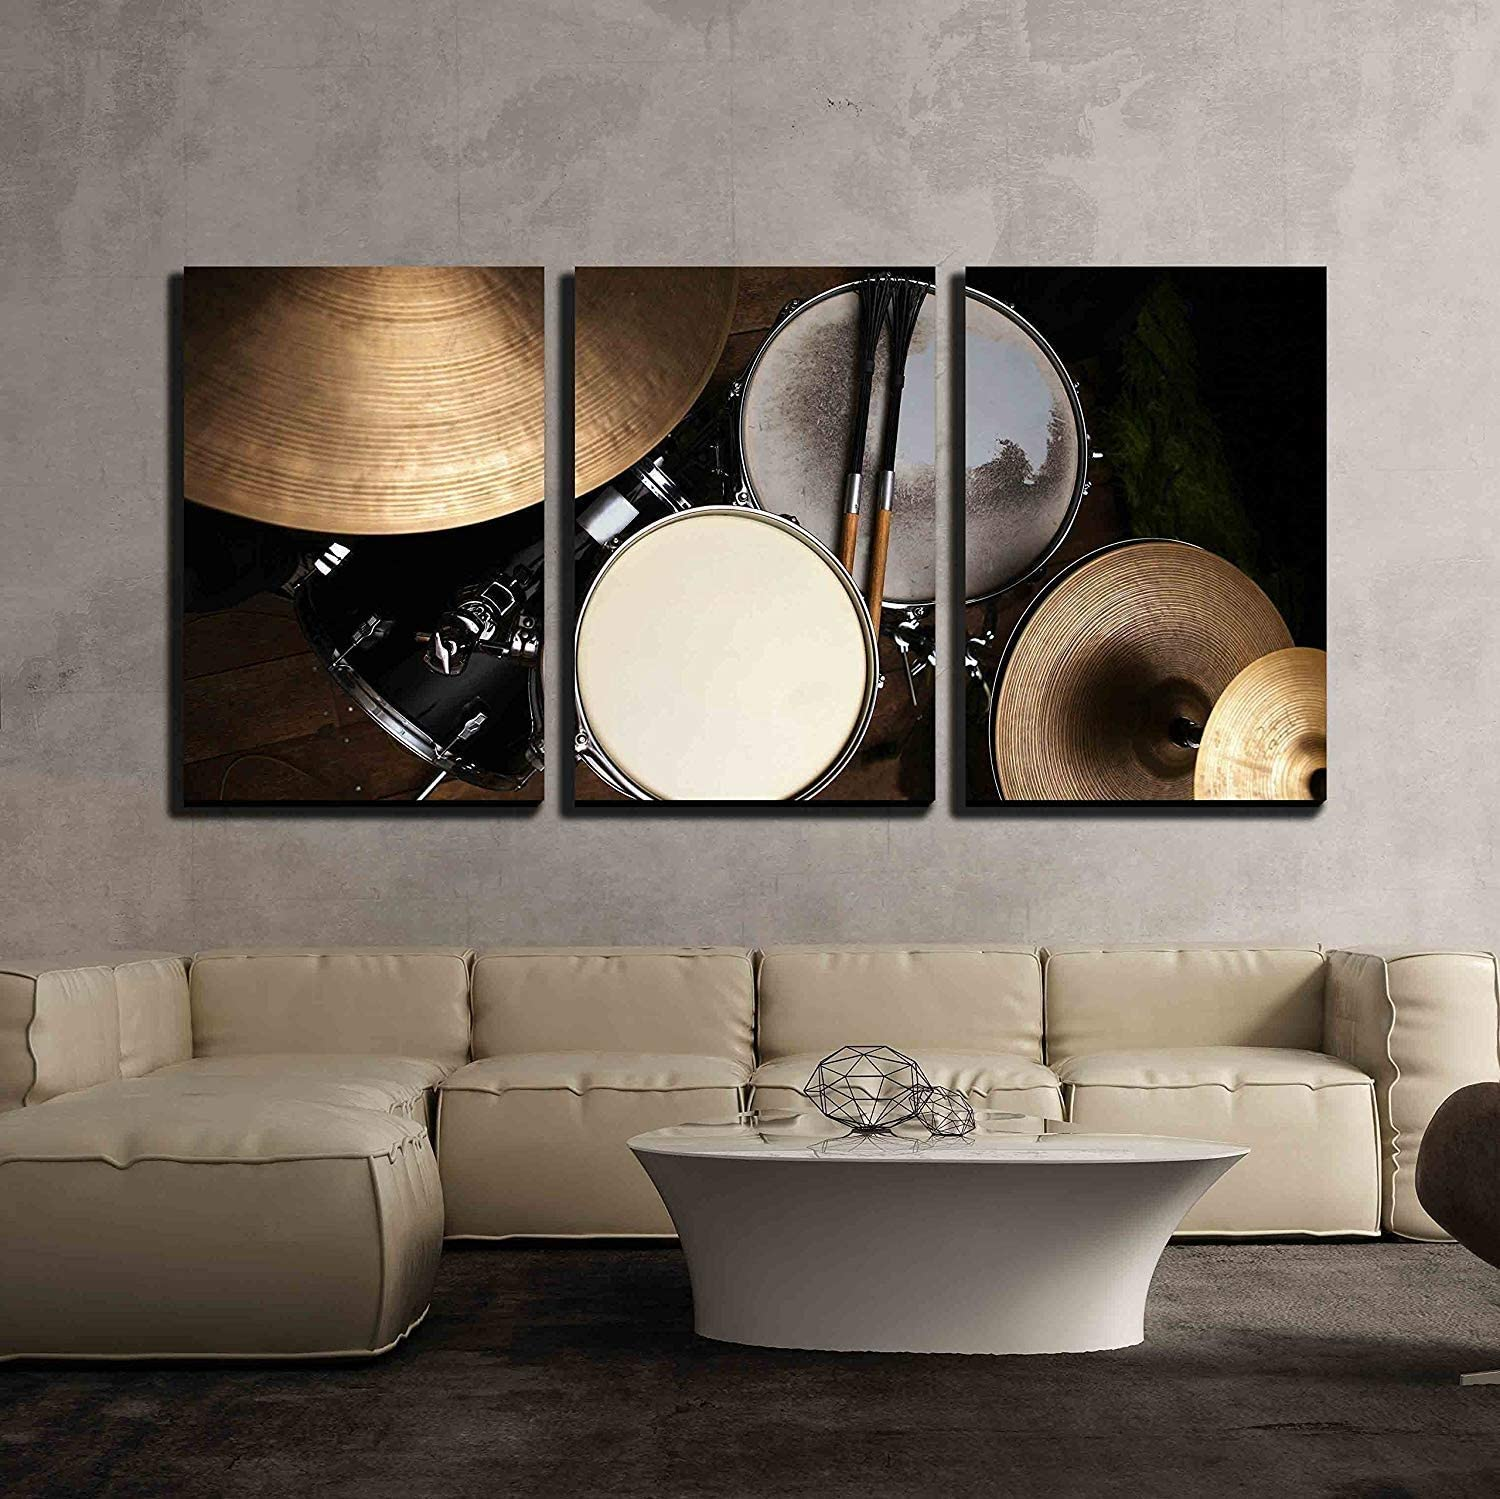 """wall26 - 3 Piece Canvas Wall Art - Drum Set in Dramatic Light on a Black Background - Modern Home Art Stretched and Framed Ready to Hang - 16""""x24""""x3 Panels"""